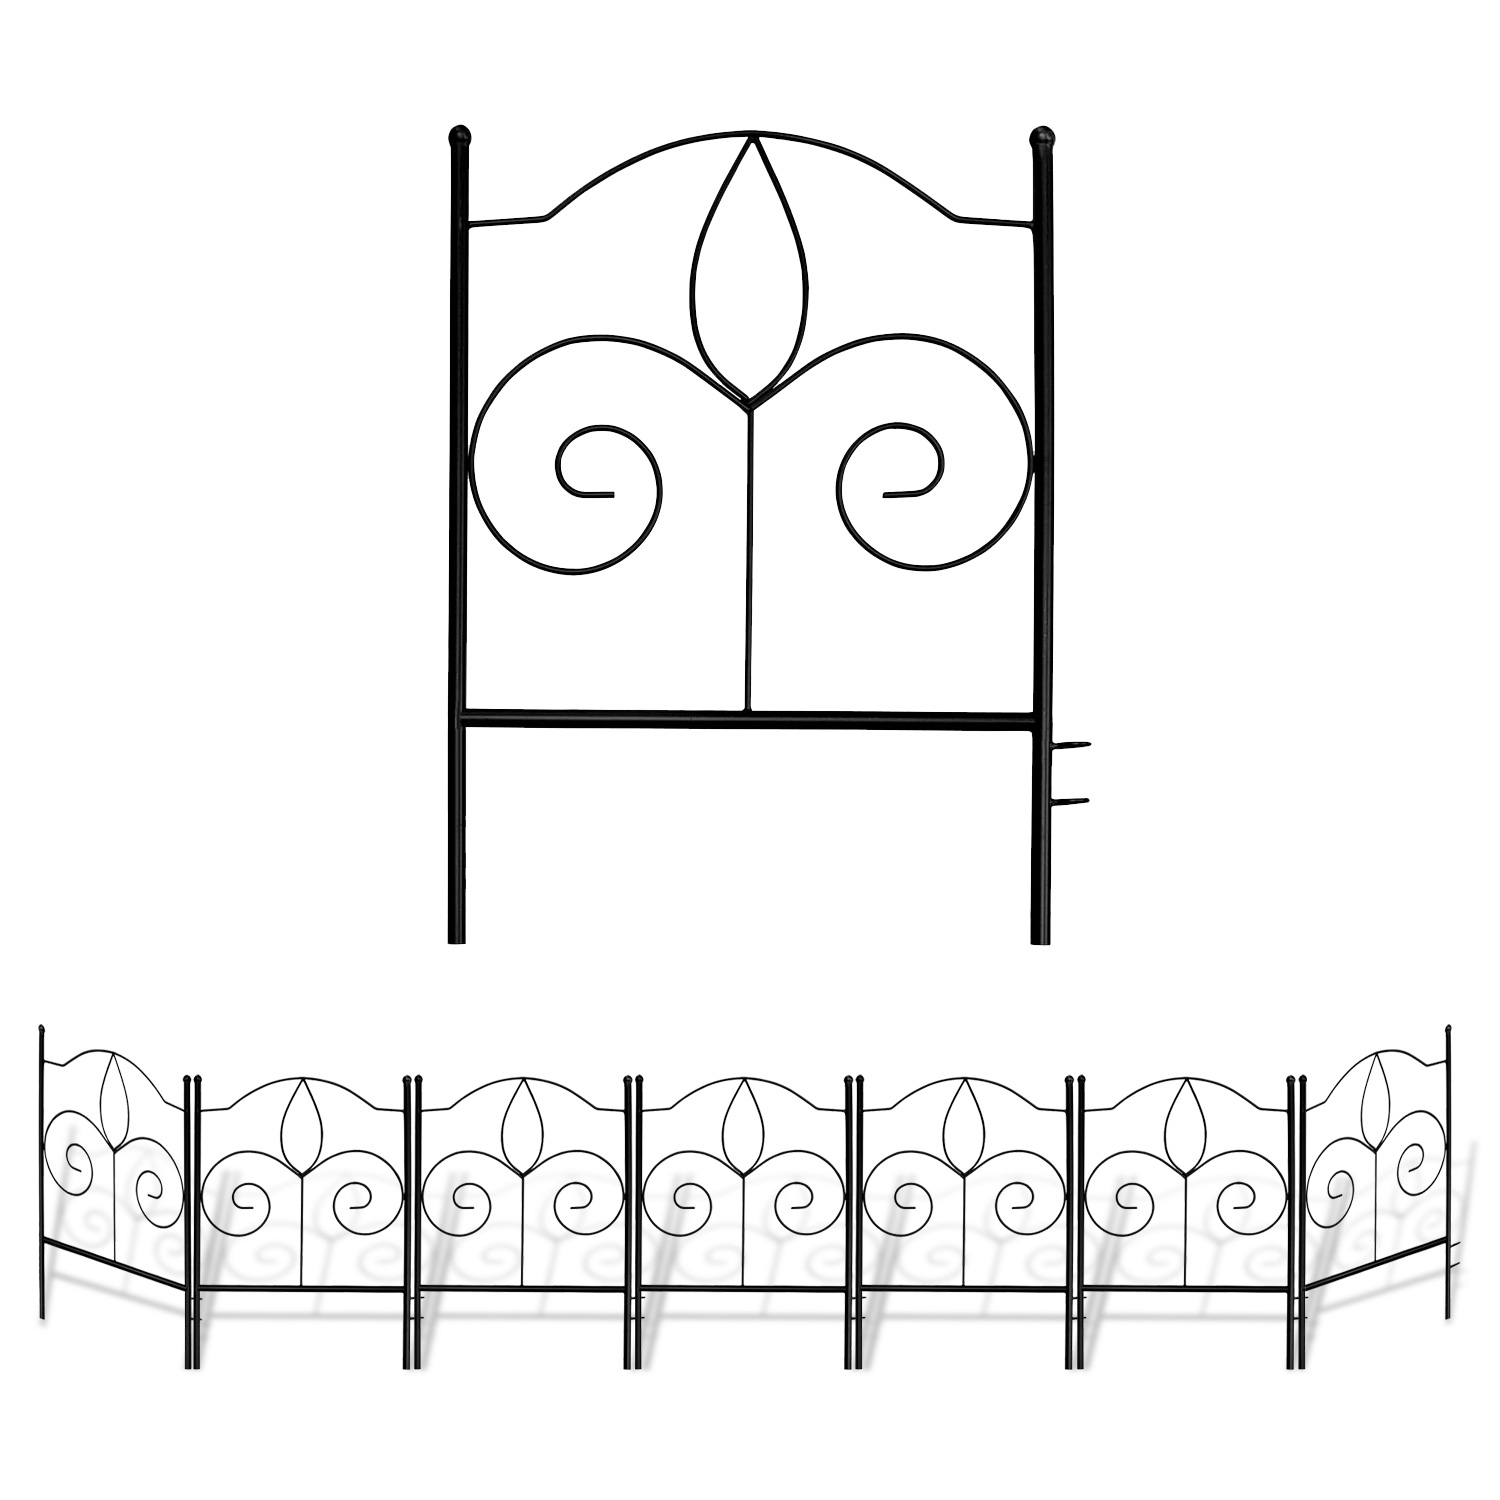 GrayBunny GB-6900WH3 Garden Trellis for Vines and Climbing Plants Black Metal Wire Lattice Grid Panels for Cucumber /& Vegetables Clematis Support Rose Vines Durable /& Sturdy Beautiful Plant Decor